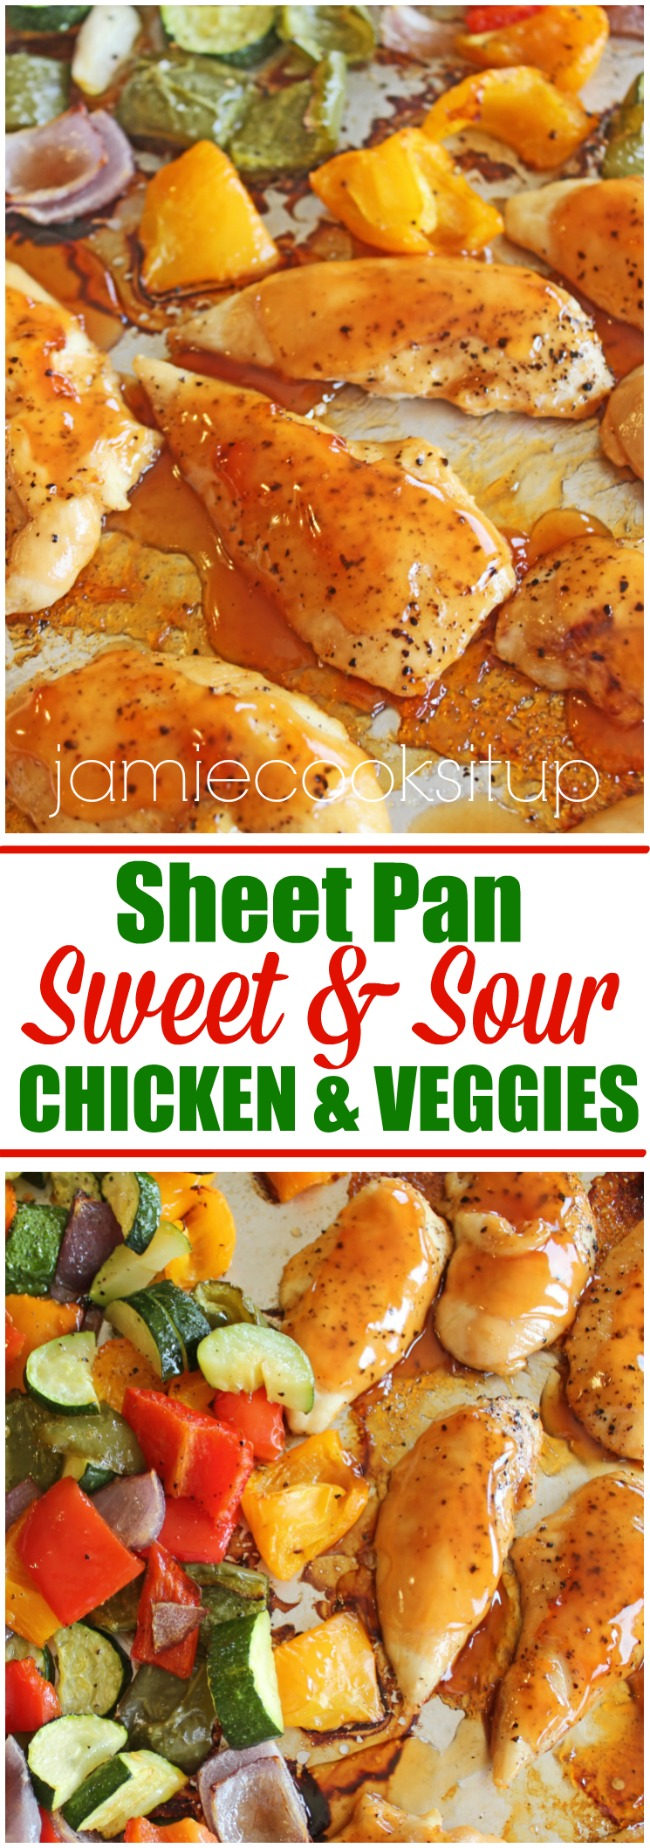 Sheet Pan Sweet and Sour Chicken and Veggies from Jamie Cooks It Up!